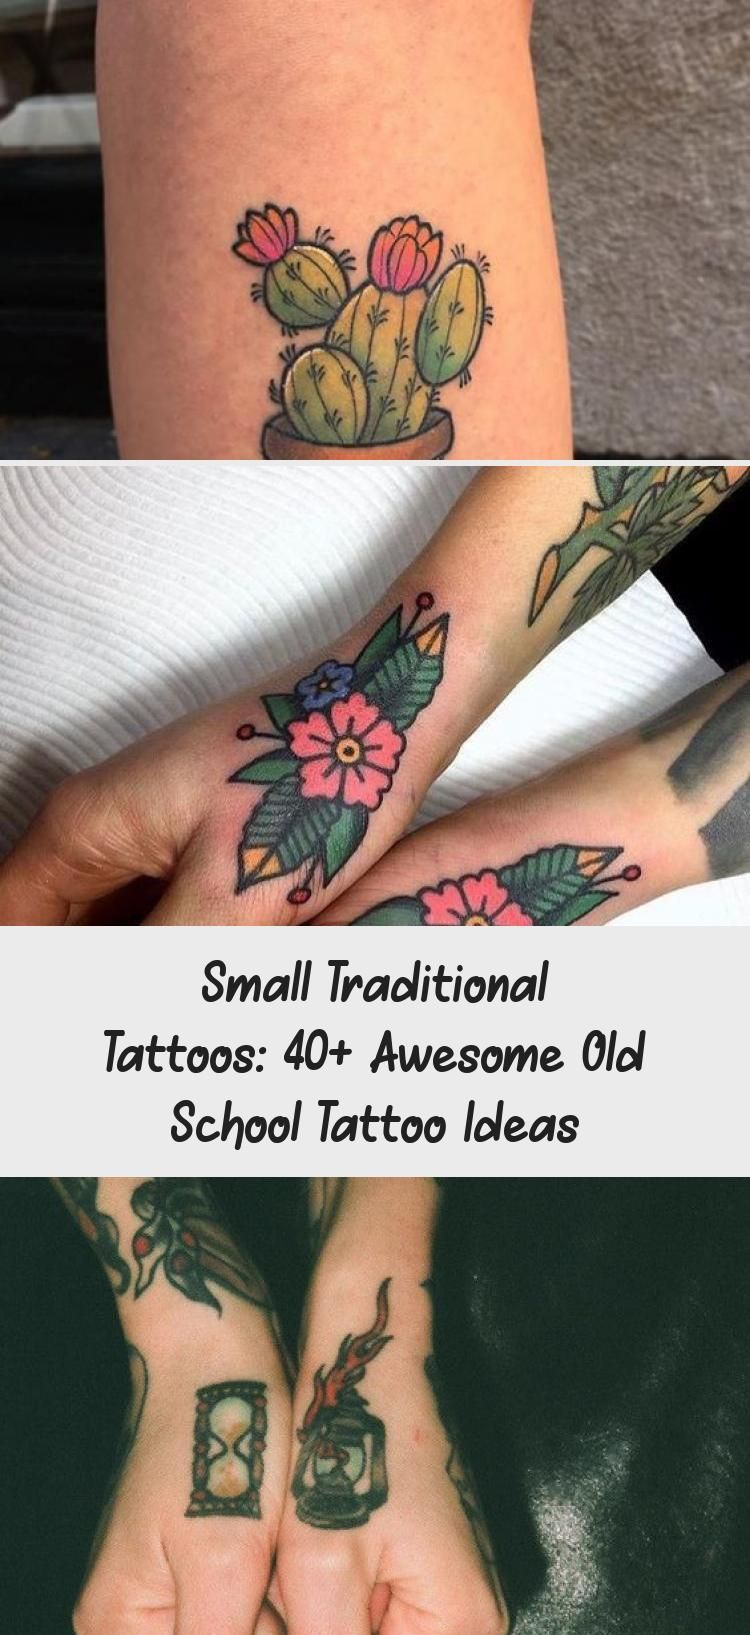 Photo of Small traditional tattoos: 40+ Awesome Old School Tattoo Ideas  #awesome #school…